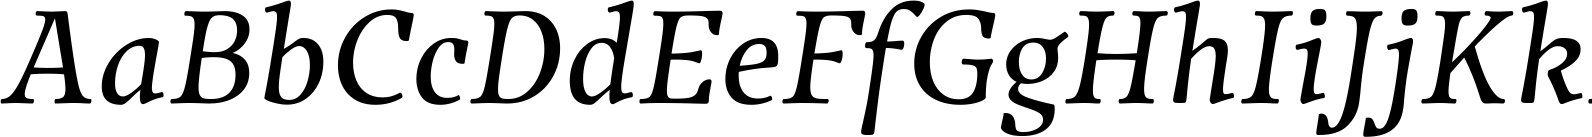 Traction Italic Font